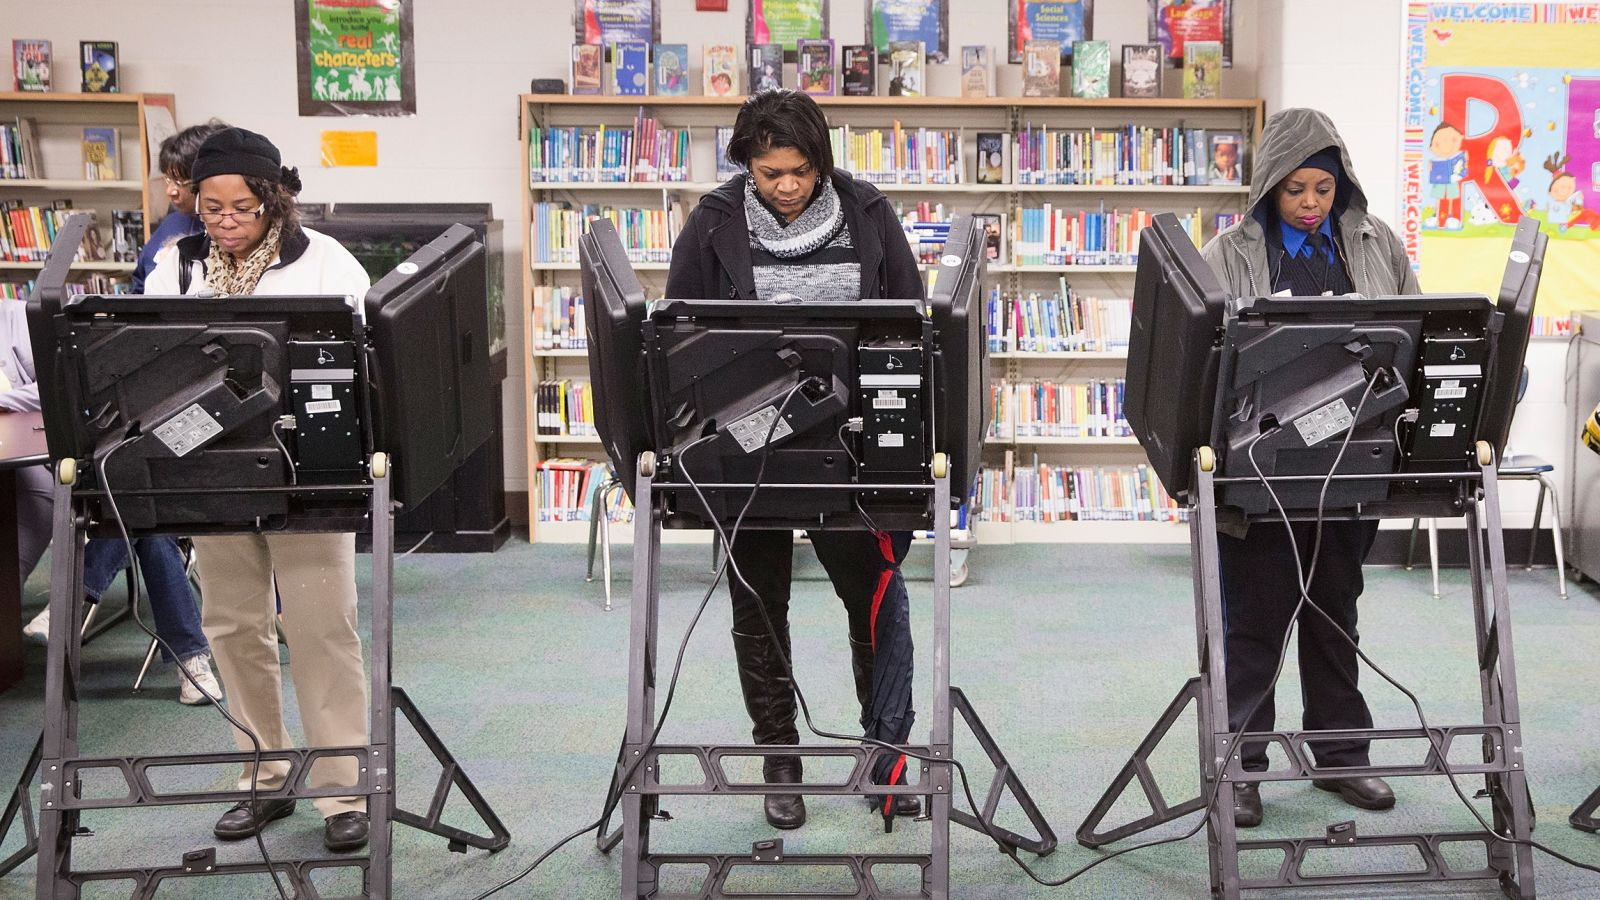 <a href='https://www.theroot.com/millions-of-black-voters-are-being-purged-from-voter-ro-1827808612?utm_medium=sharefromsite&